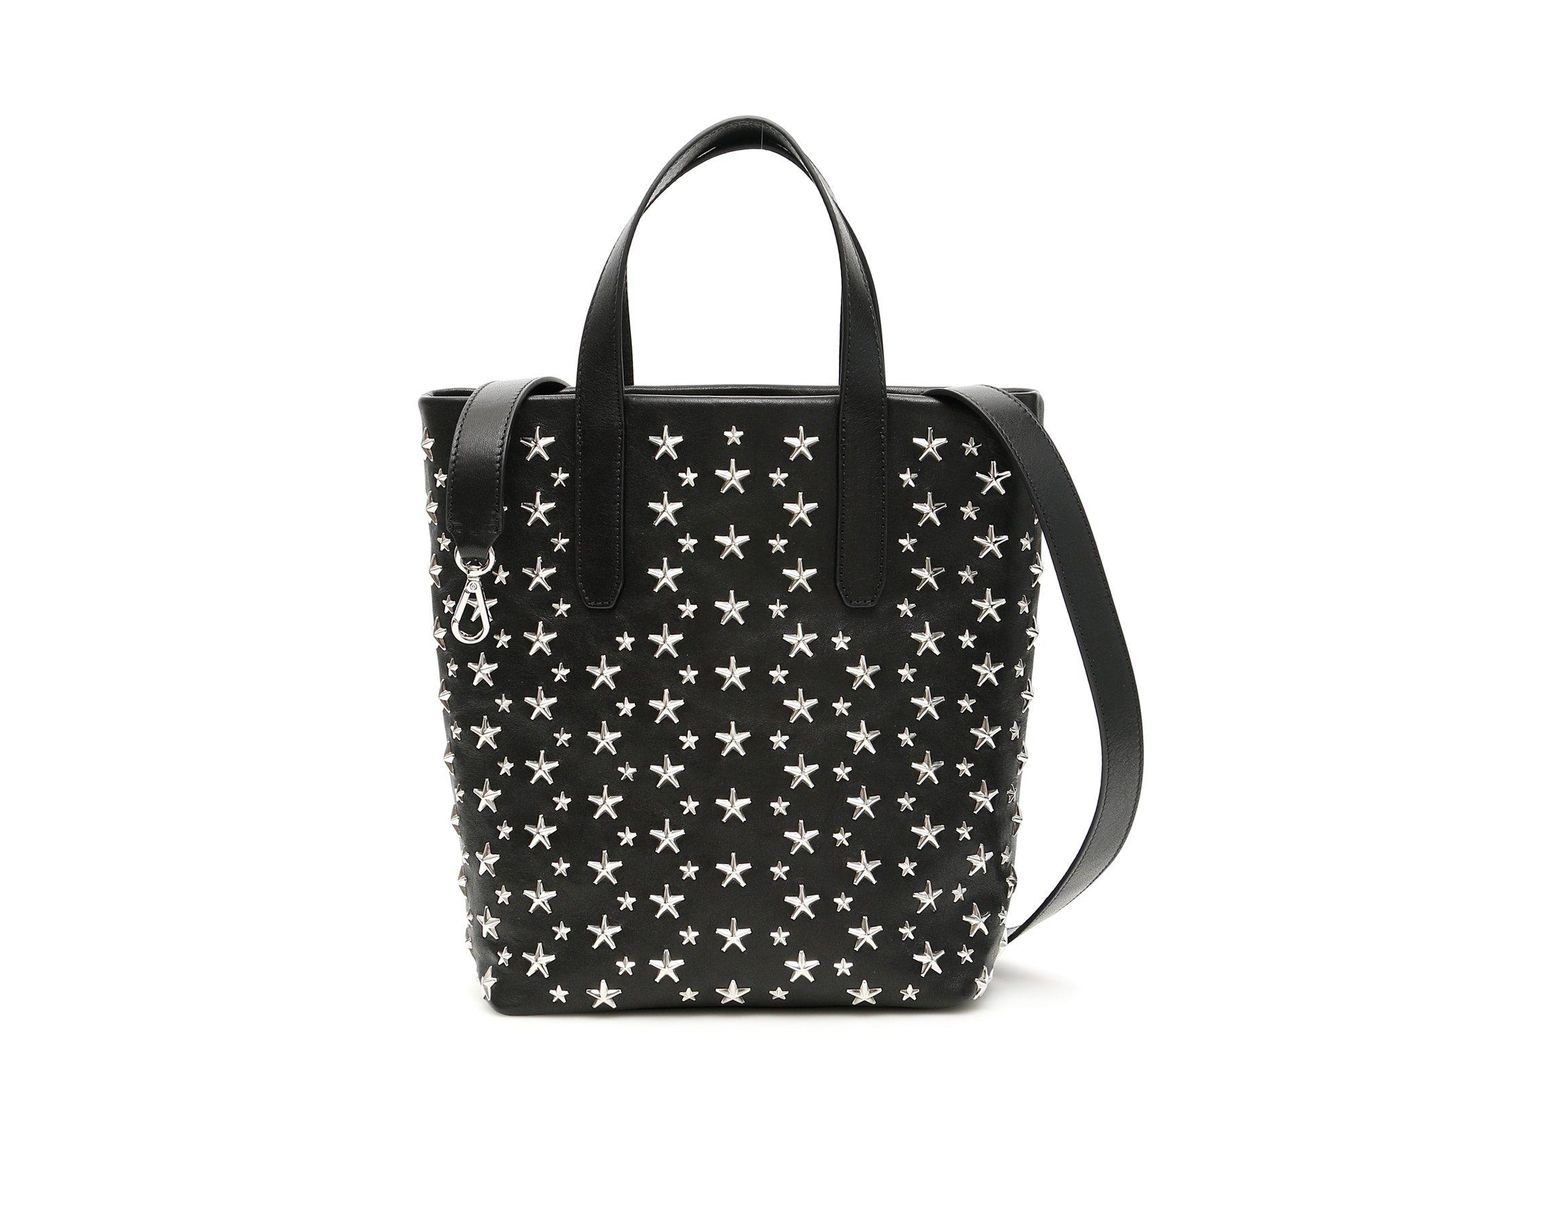 bc0ea8702 Jimmy Choo Sofia Tote Bag in Black - Save 35% - Lyst